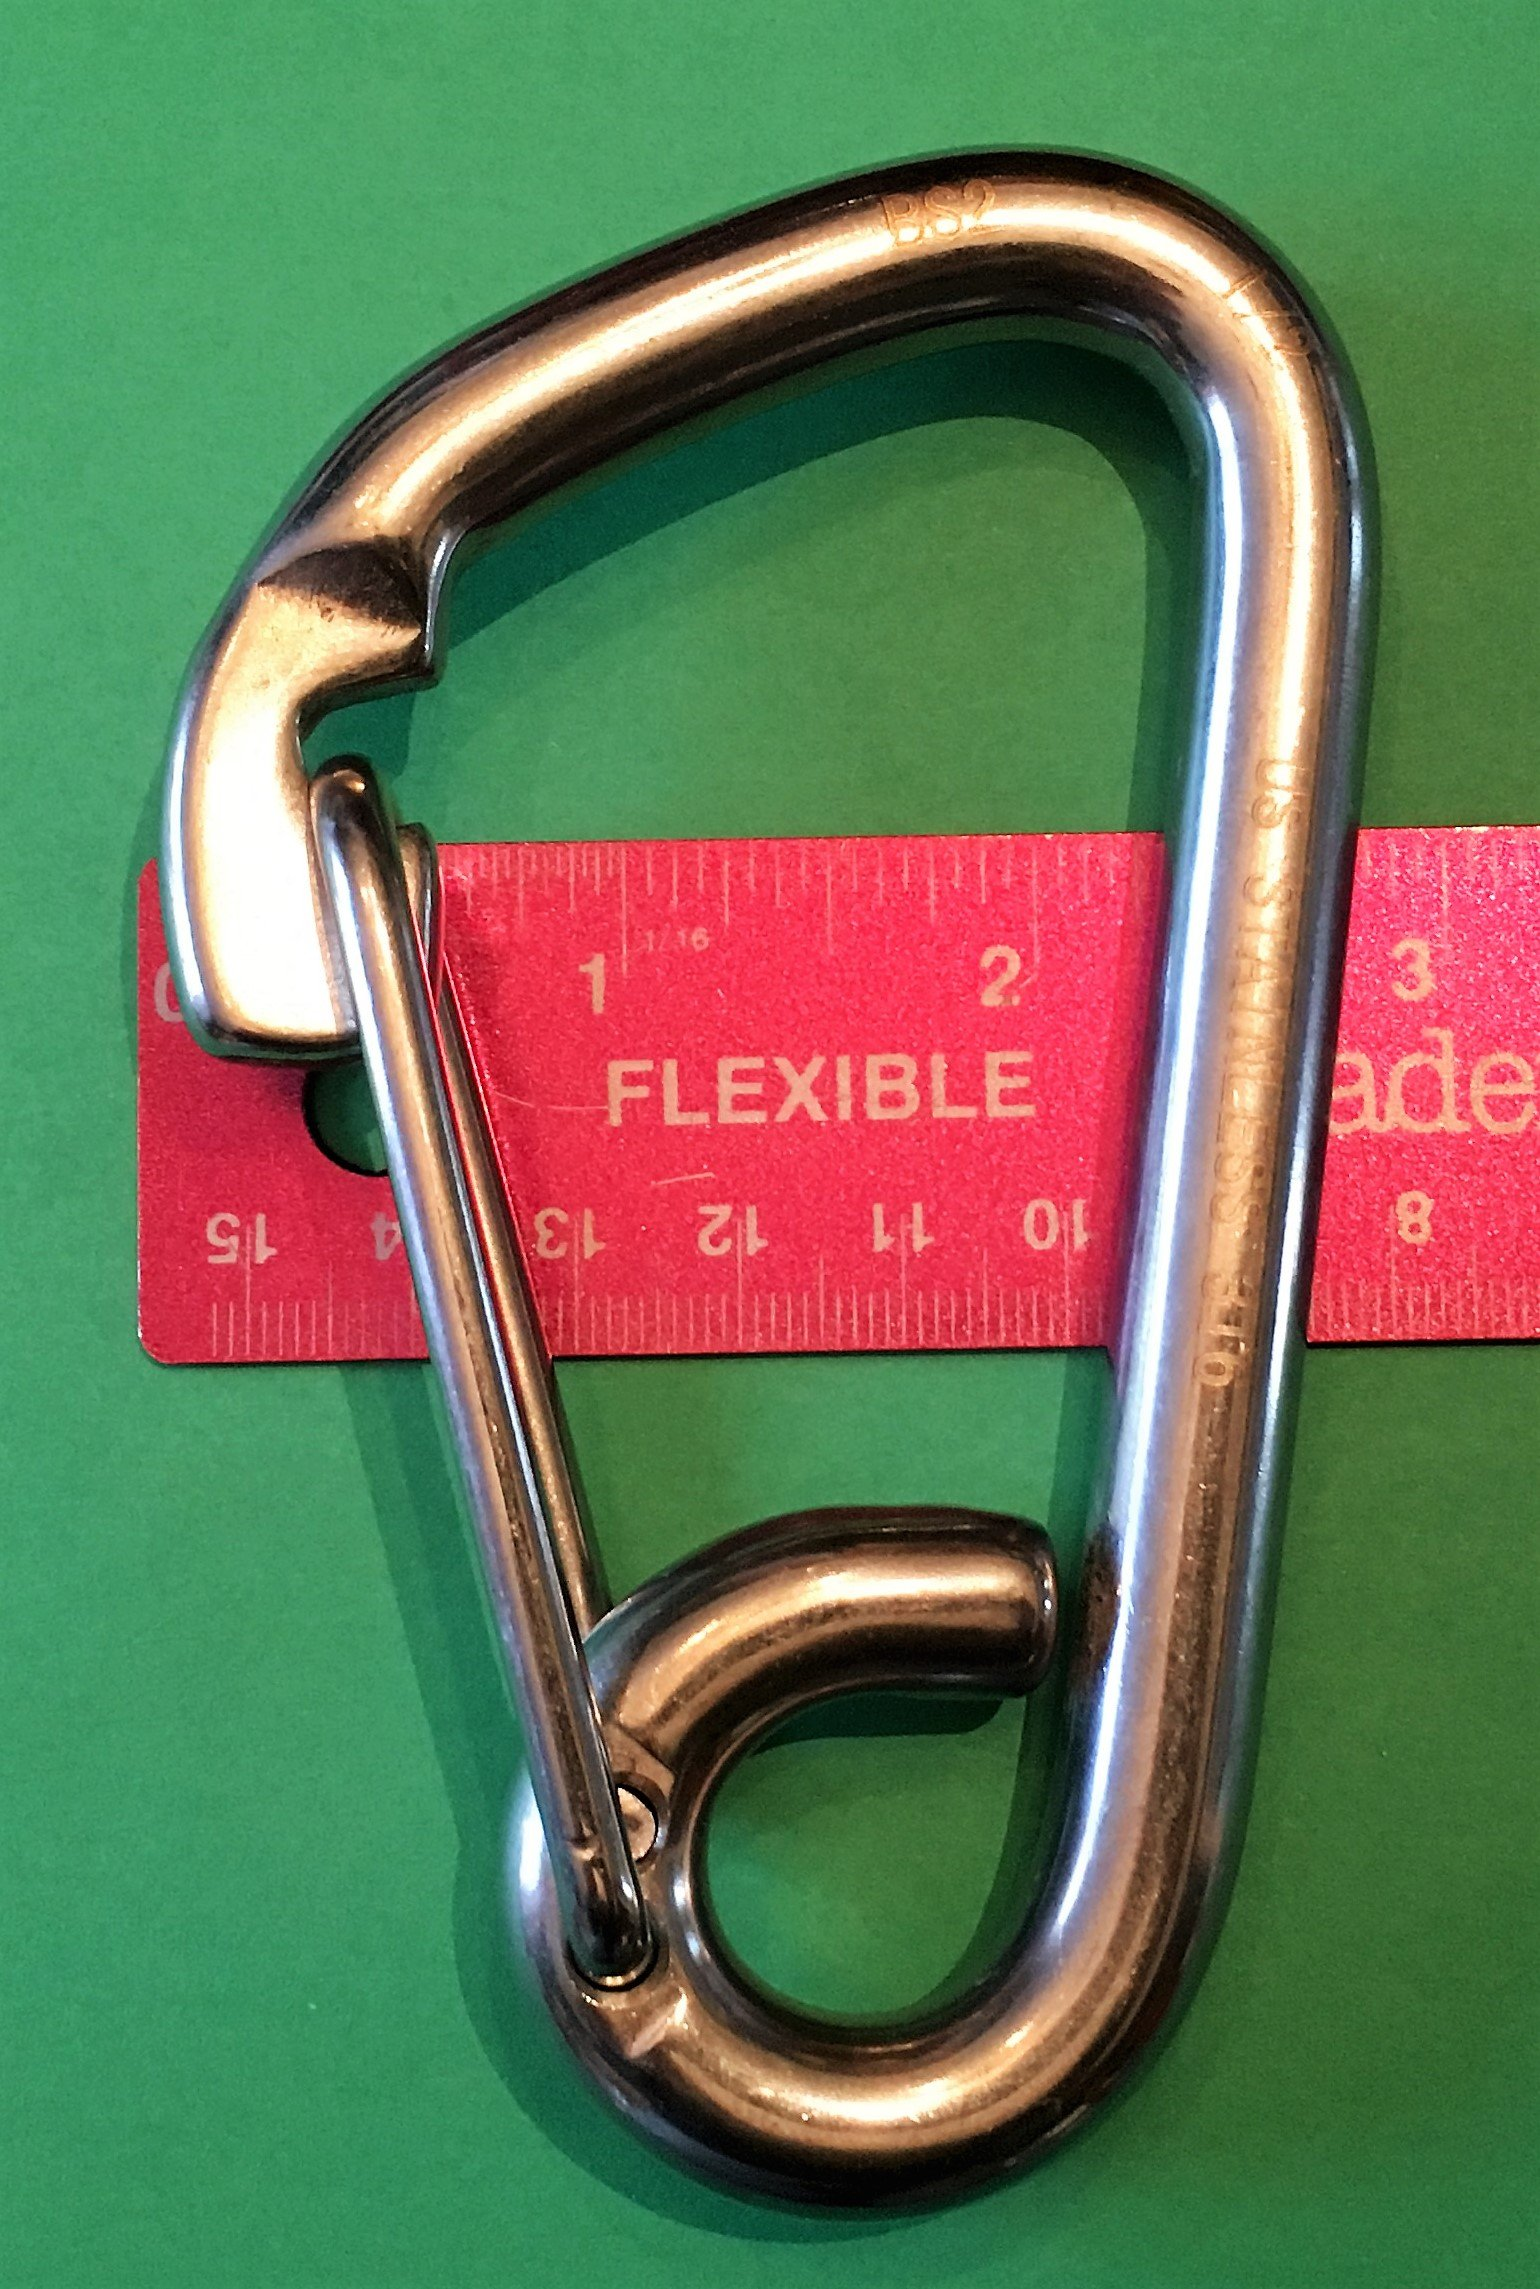 Stainless Steel 316 Spring Hook Carabiner 1/2'' (12mm) Marine Grade Safety Clip by US Stainless (Image #3)